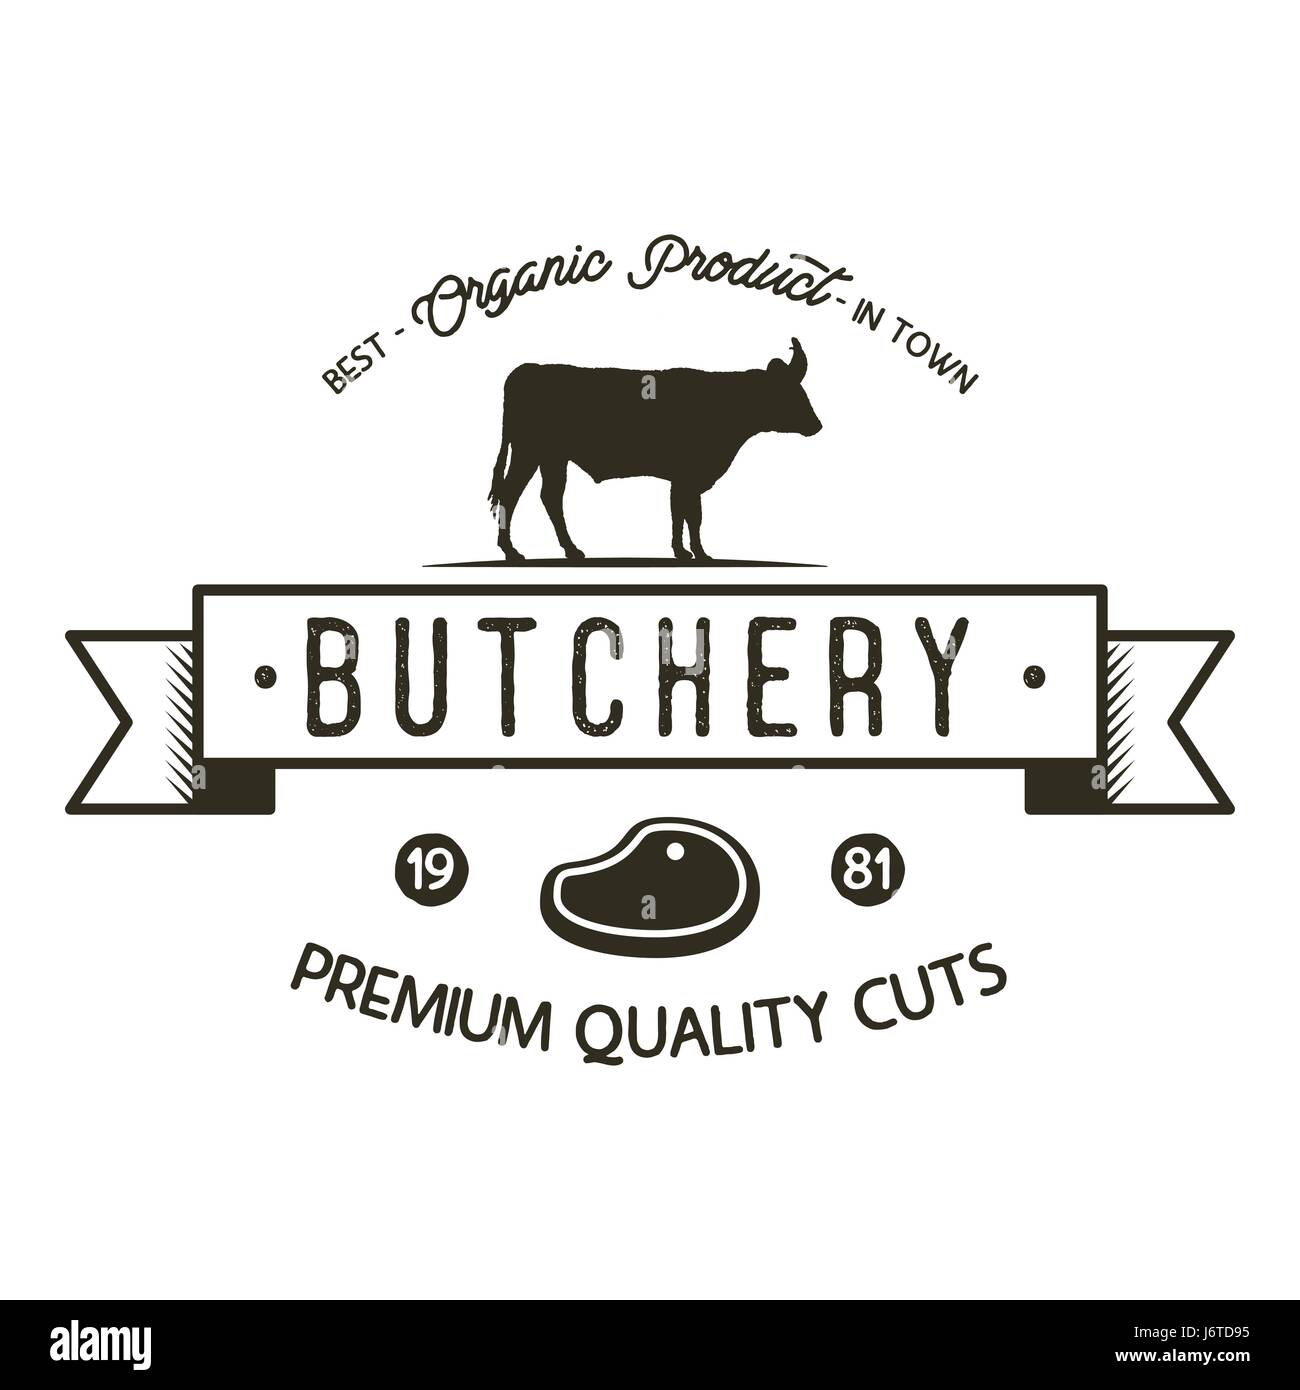 Butchery shop logo template old style badge design with old style badge design with silhouette cow symbol and typography elements stock vector isolated on white background buycottarizona